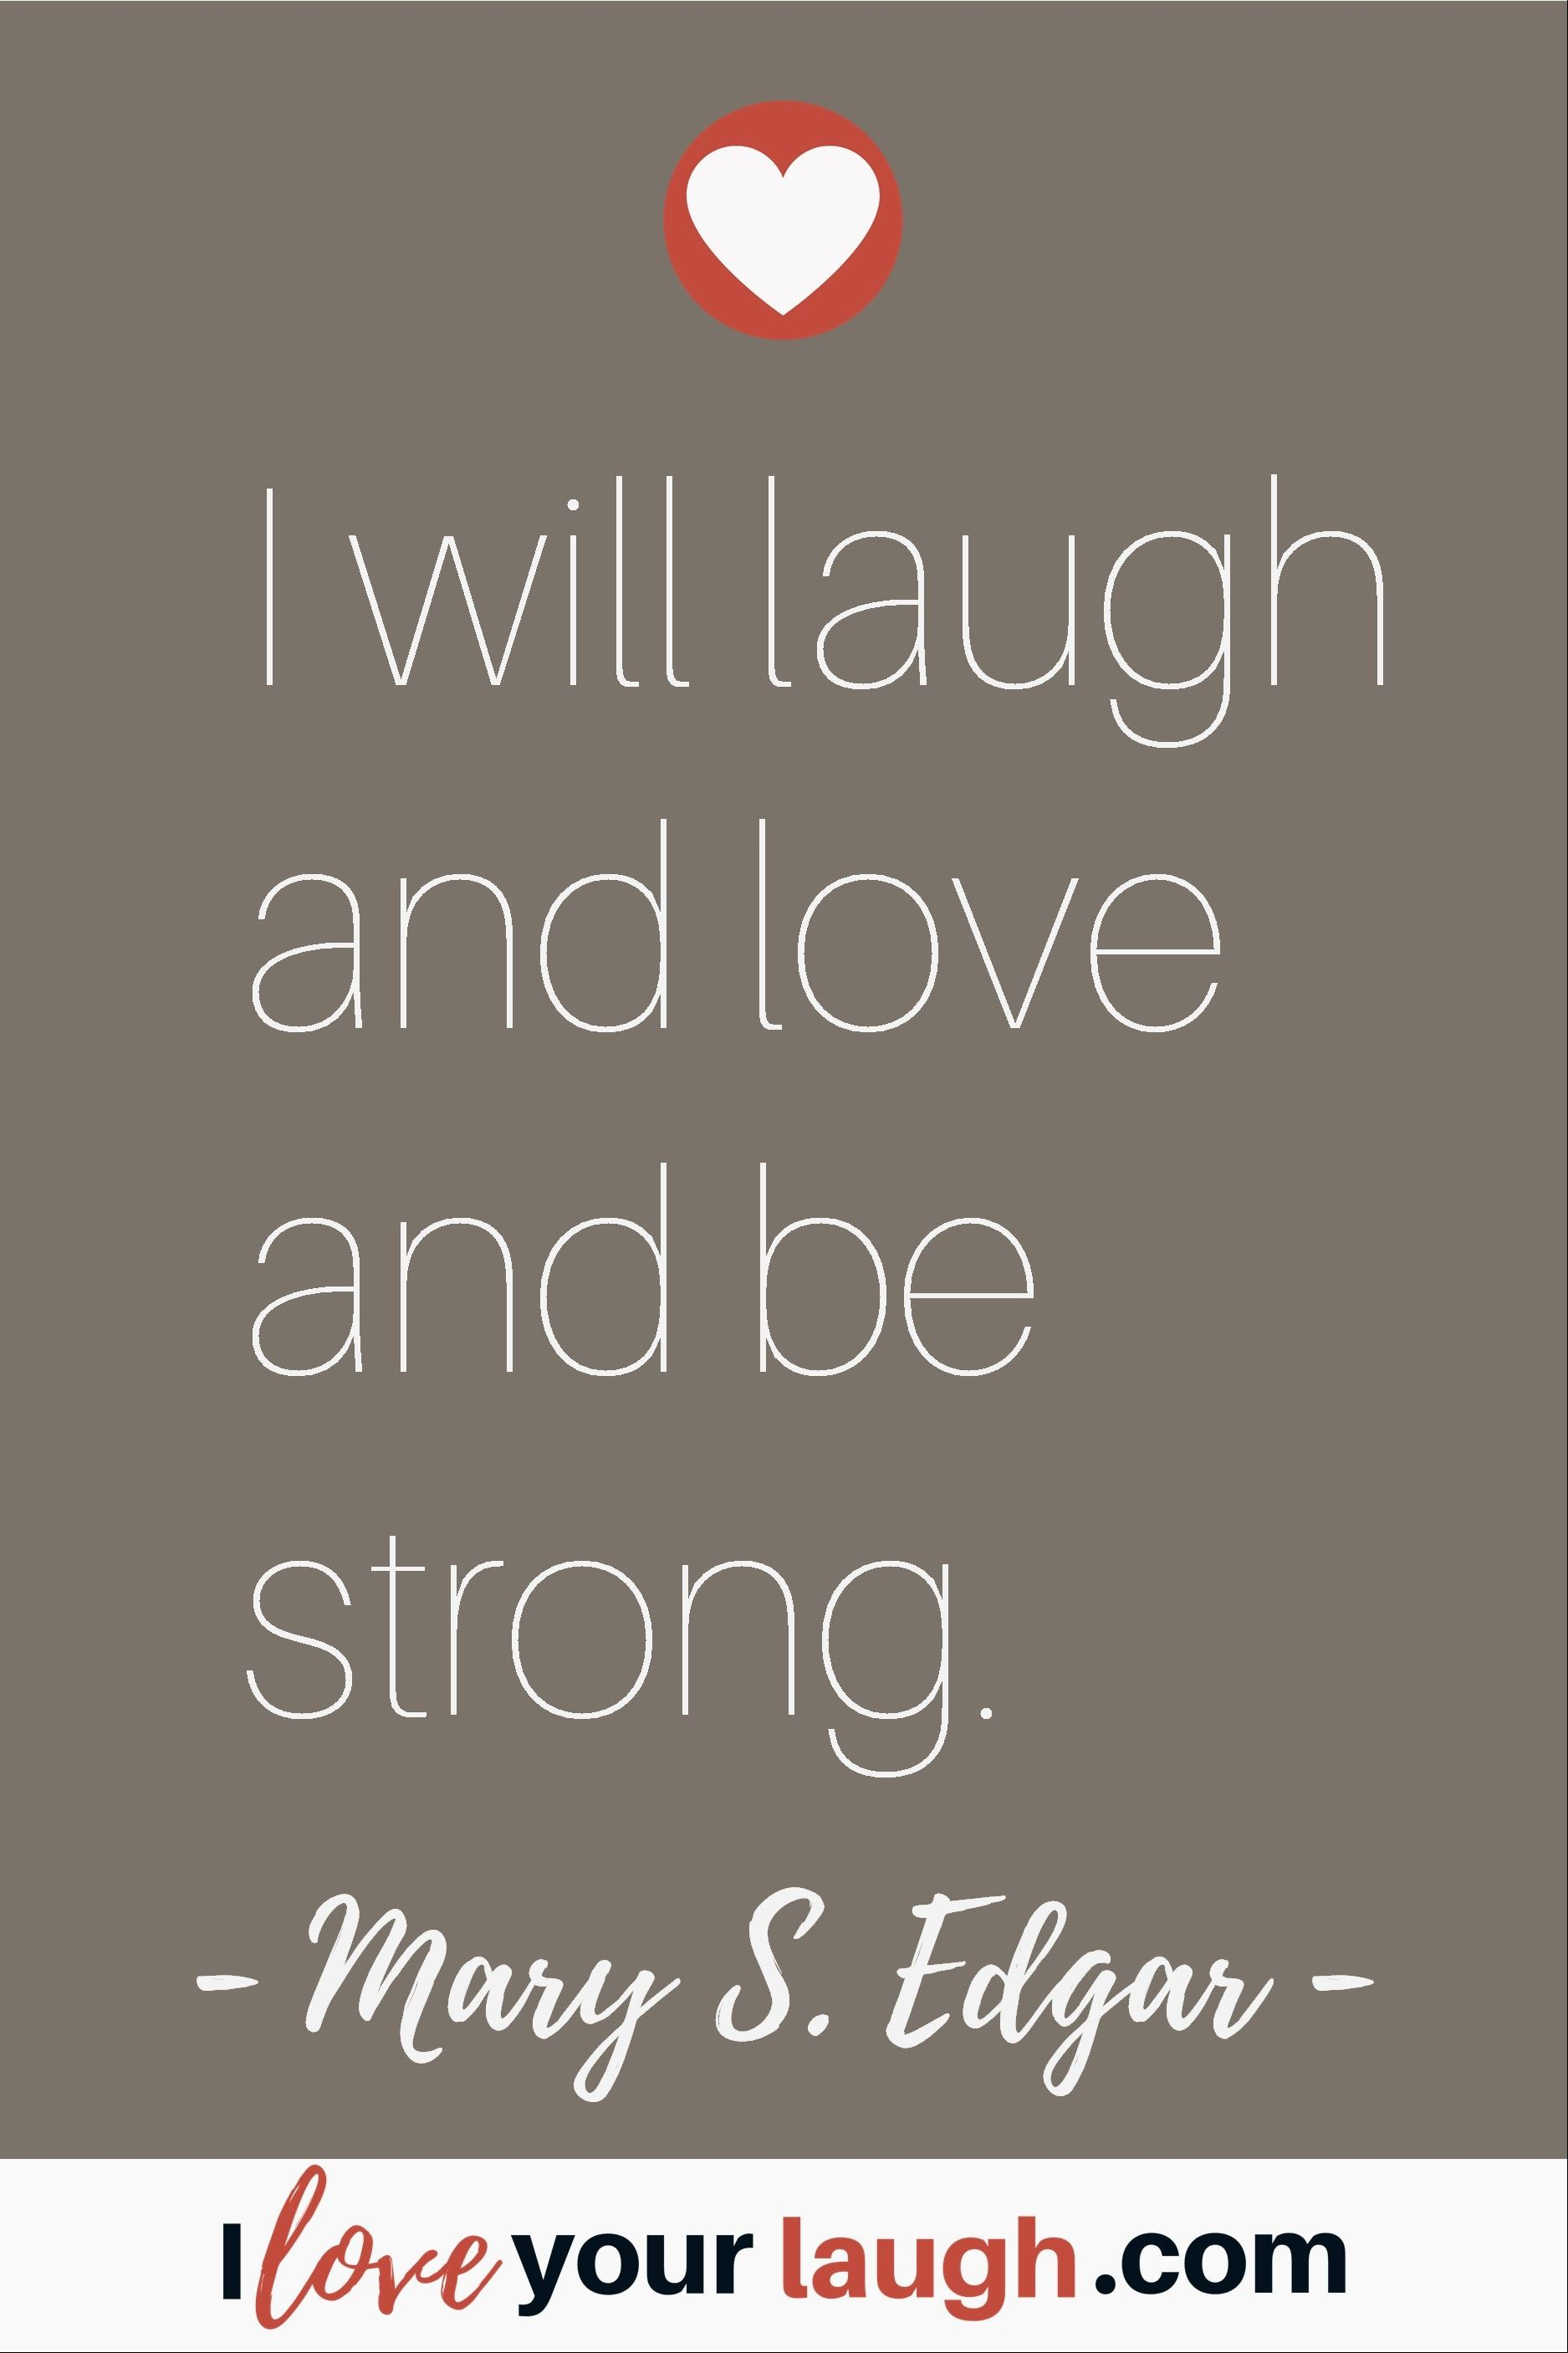 The Best Love And Laughter Quotes By I Love Your Laugh In 2020 Love And Laughter Quotes Laughter Quotes Medicine Quotes